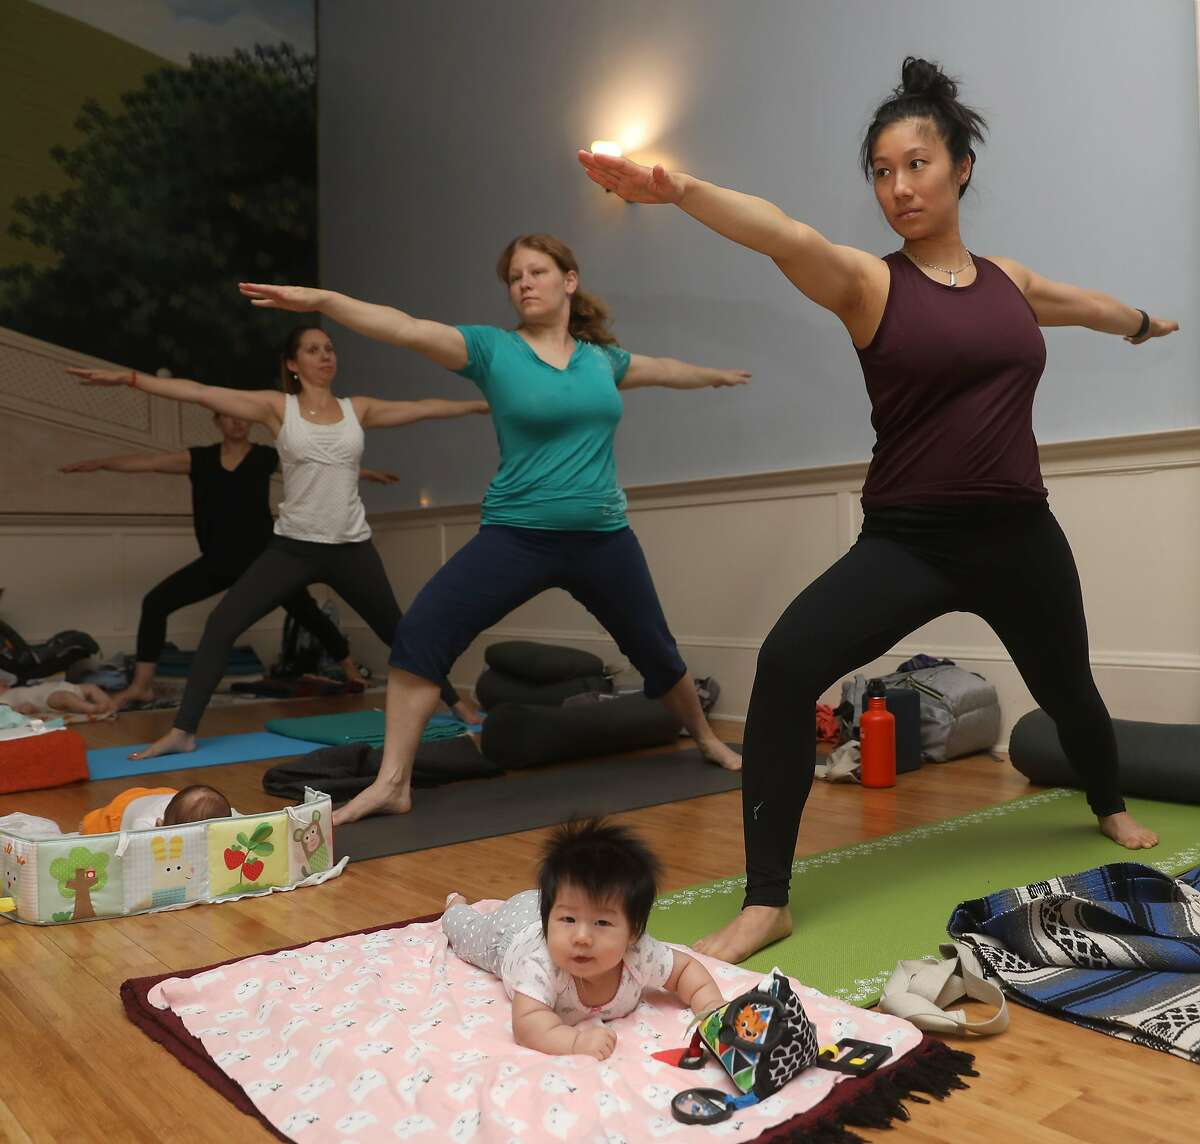 Emma (left), 12 weeks old, takes mom and baby yoga class with her mom Amanda Chau from San Francisco,at Yoga Tree on Friday, Sept. 6, 2019 in San Francisco, Calif.